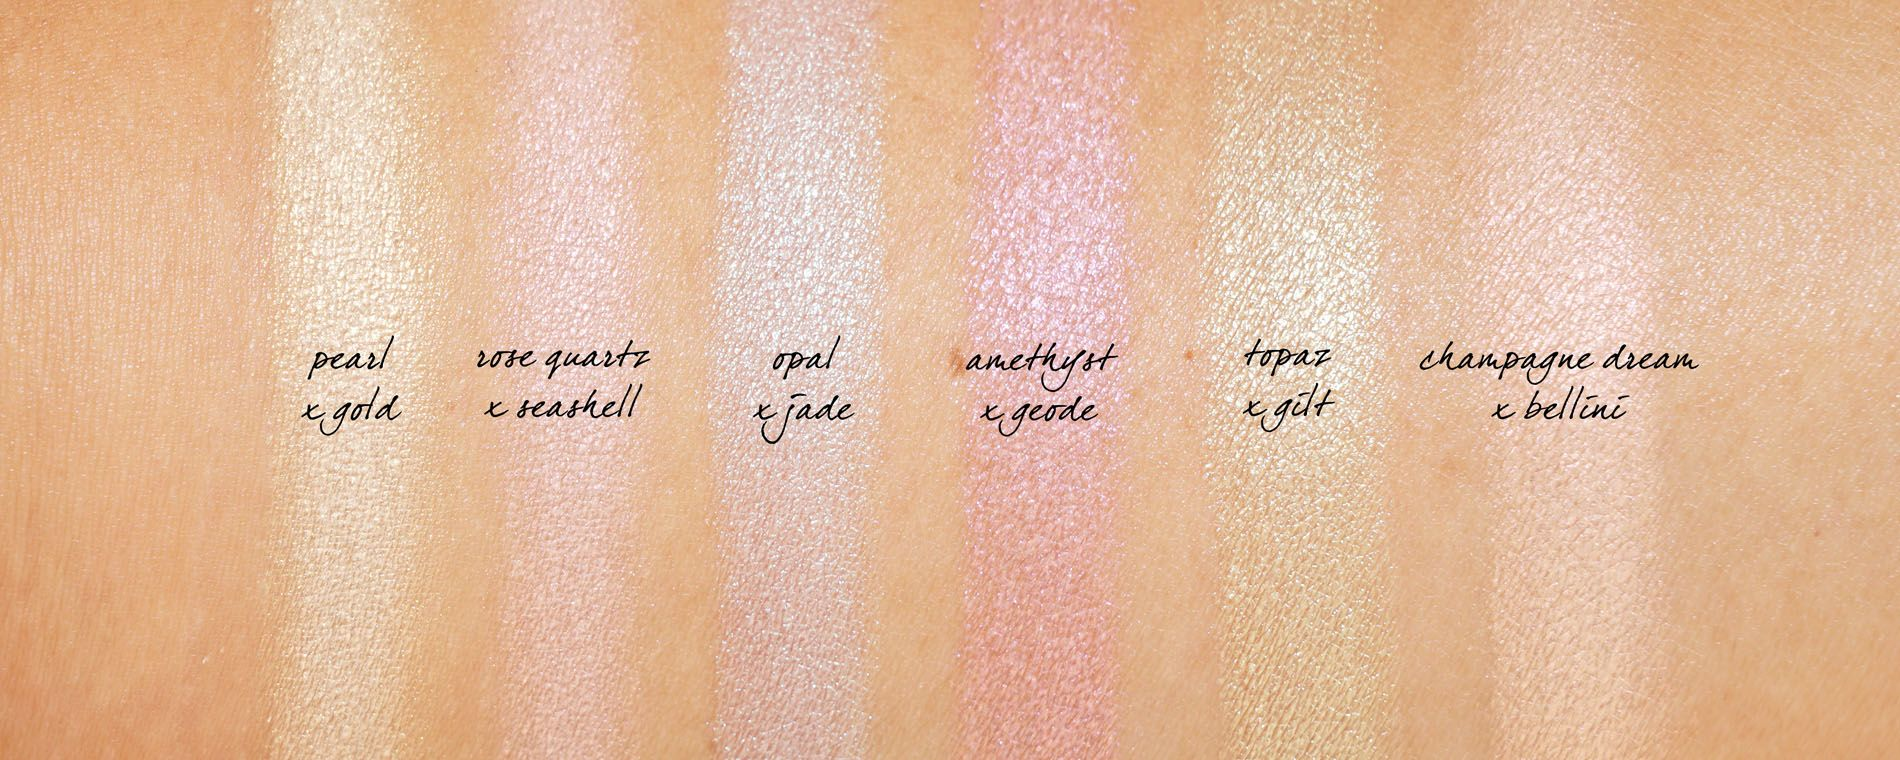 Becca Light Chaser Highlighter Review Swatches The